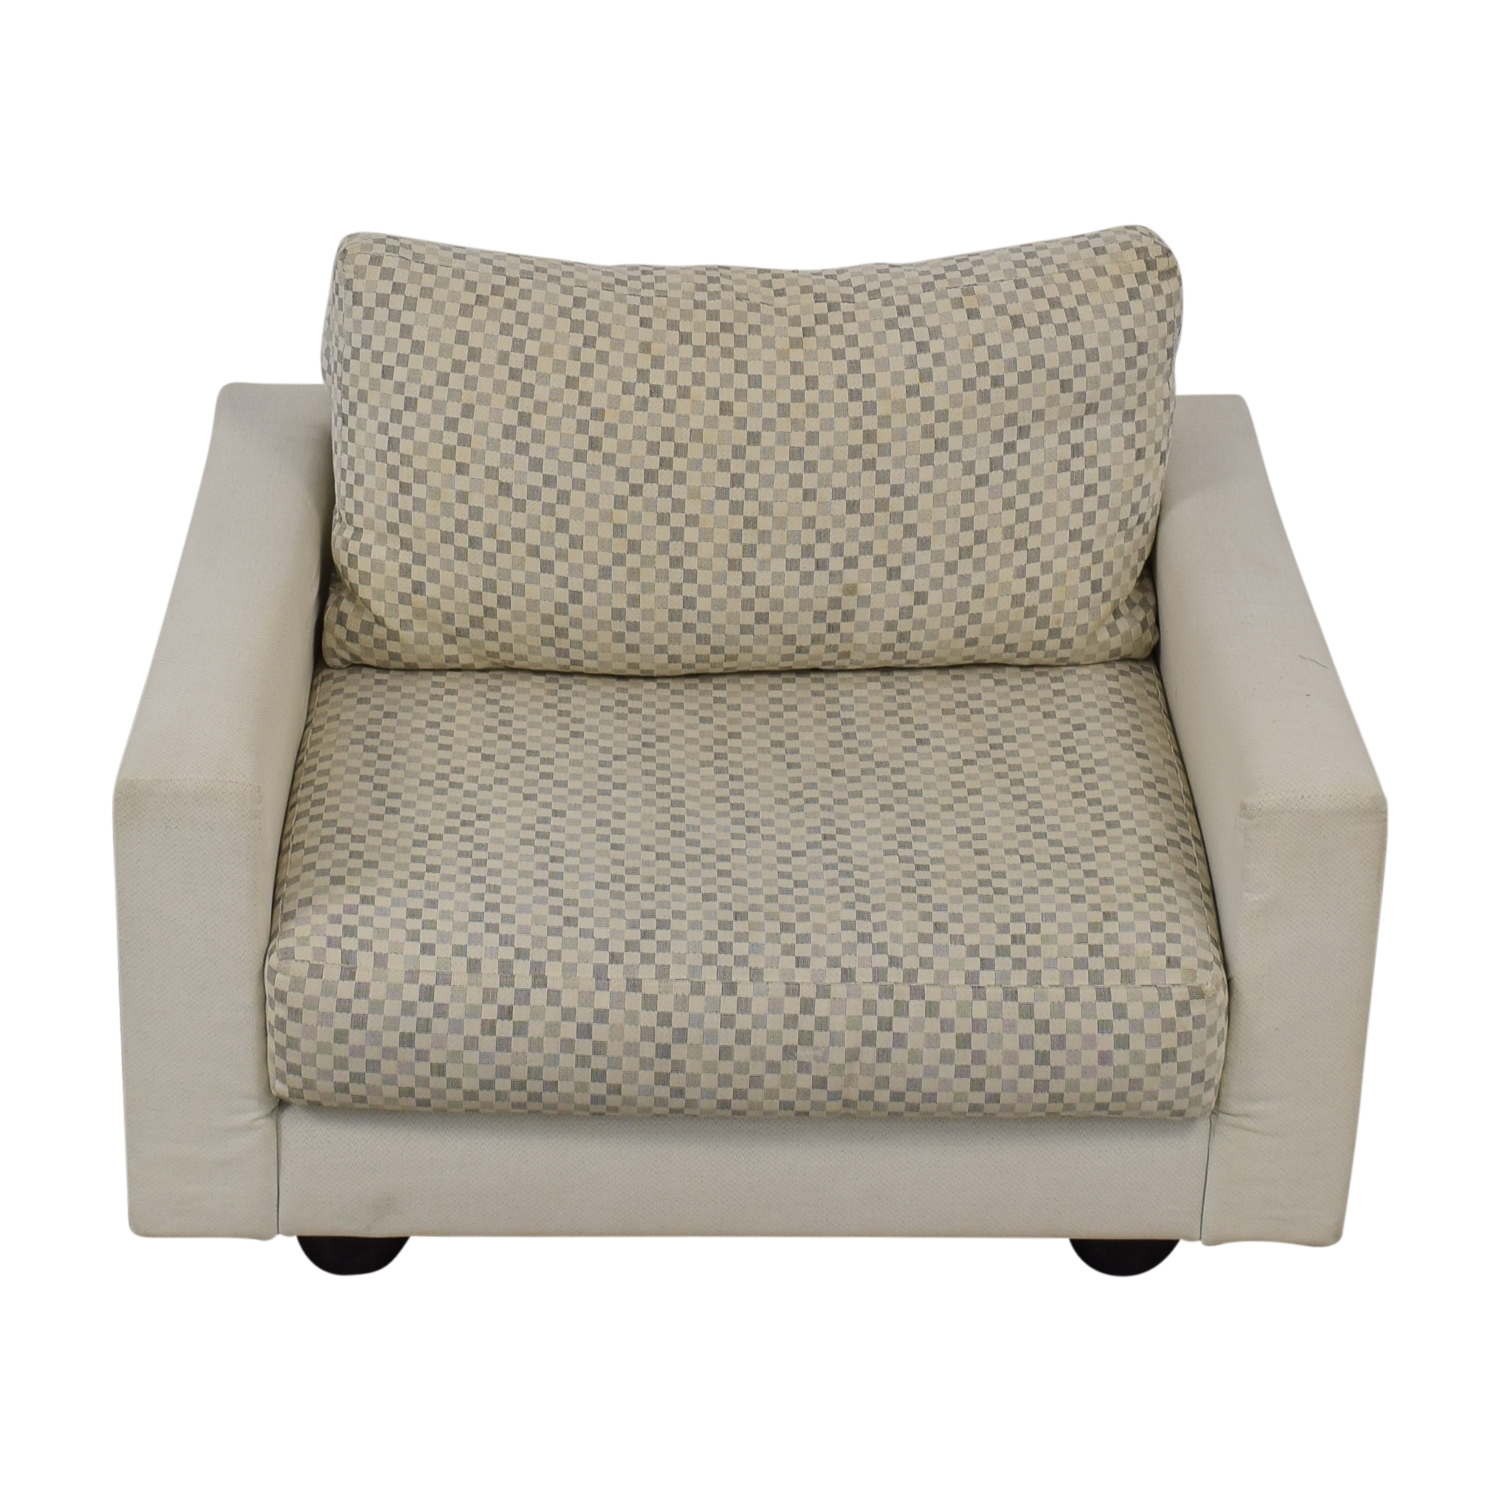 Accent Chairs.78 Off Fabric Accent Chair Chairs